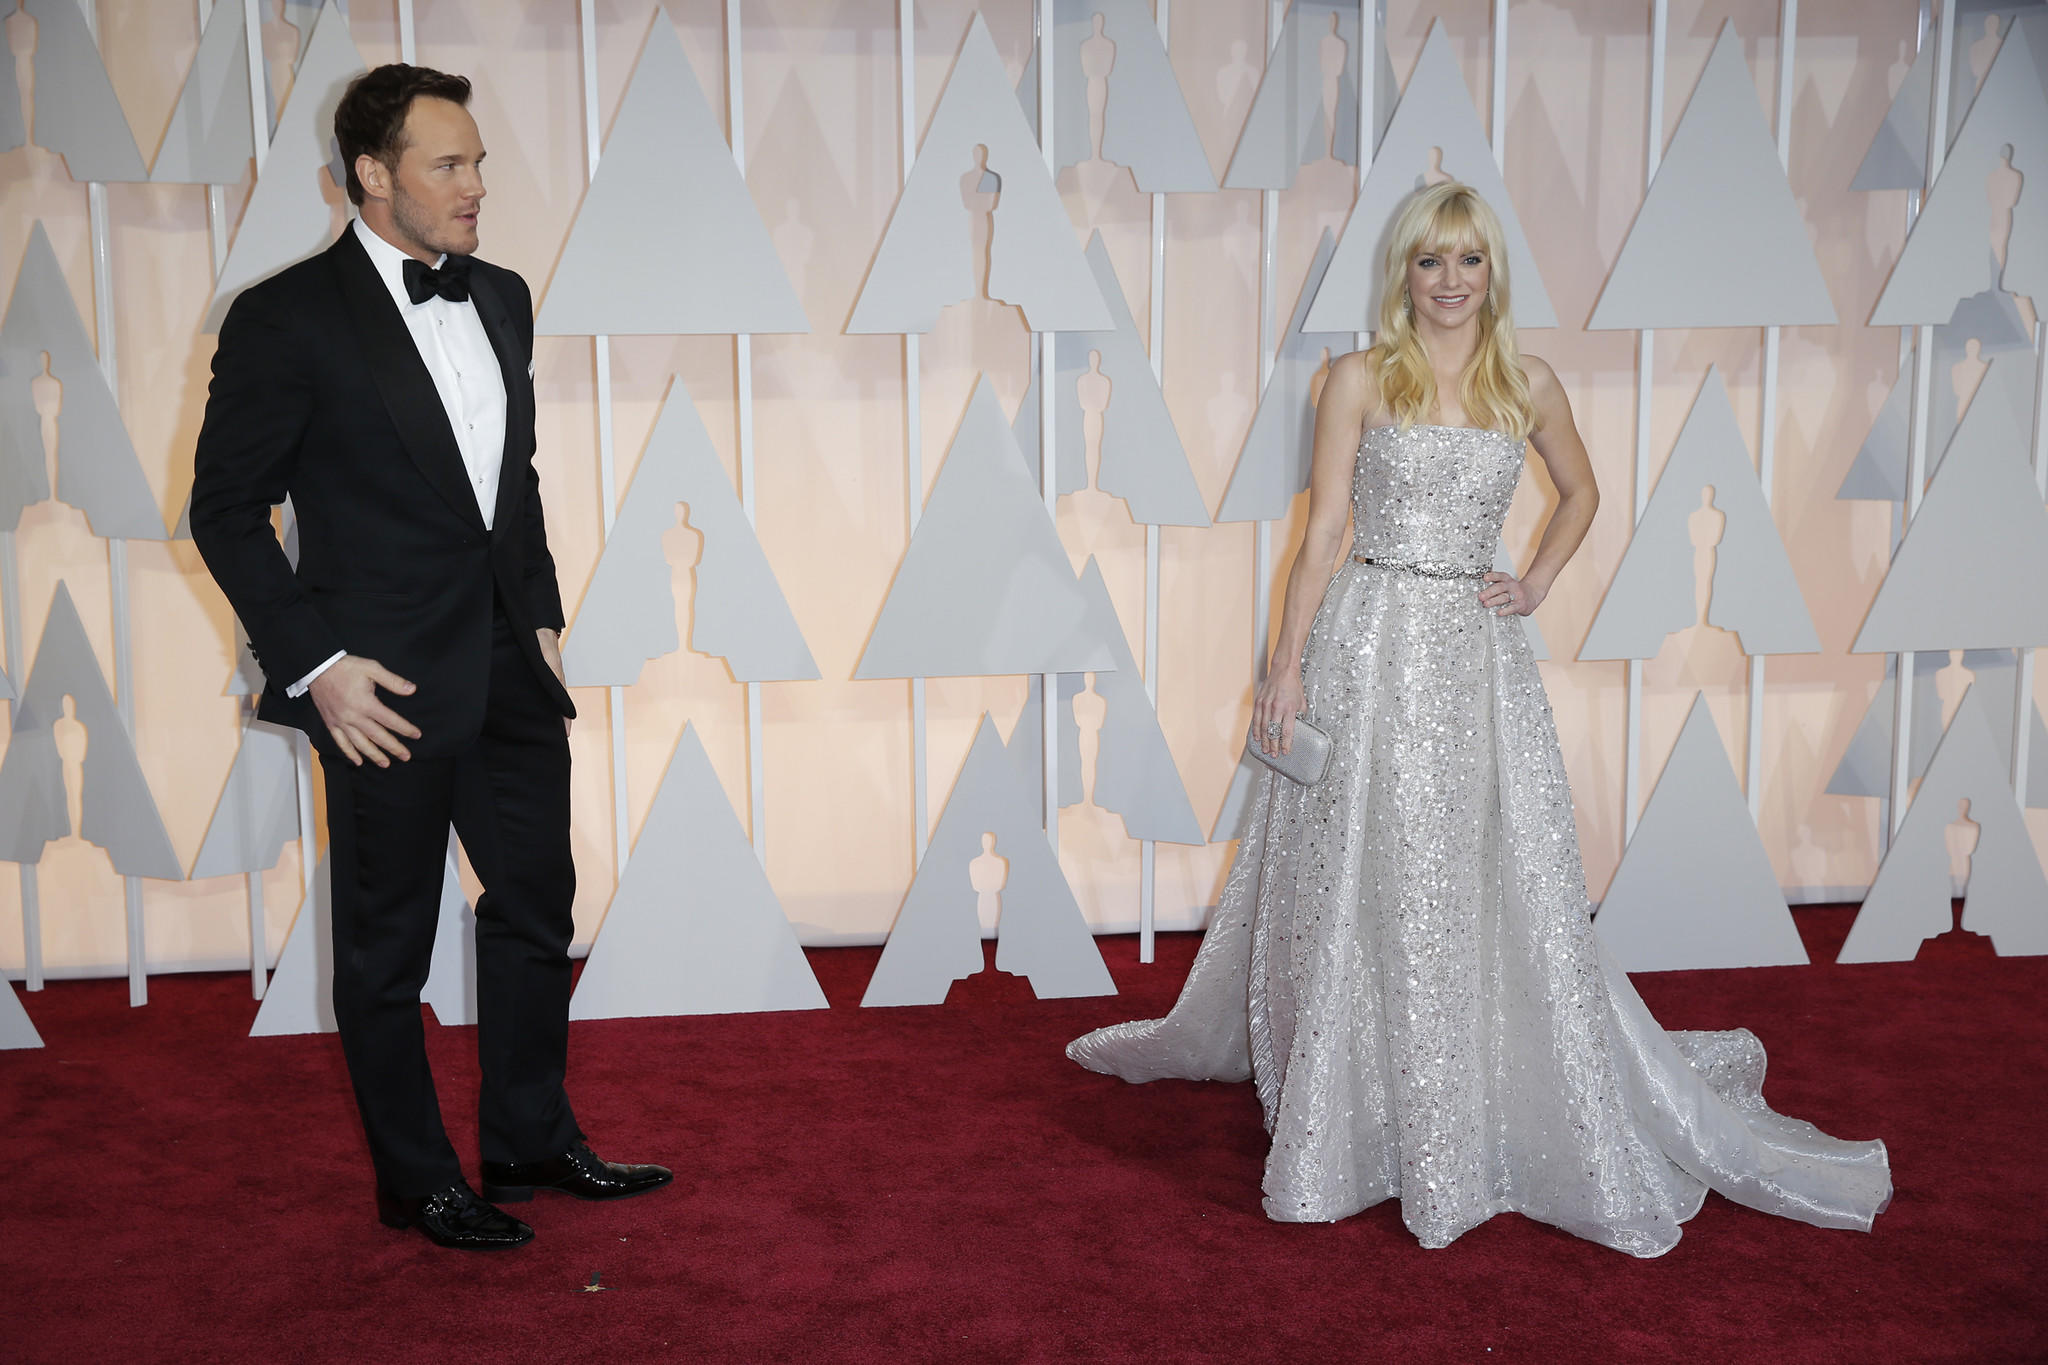 Chris Pratt's Movie Star Status Caused 'Tension' With Anna Faris